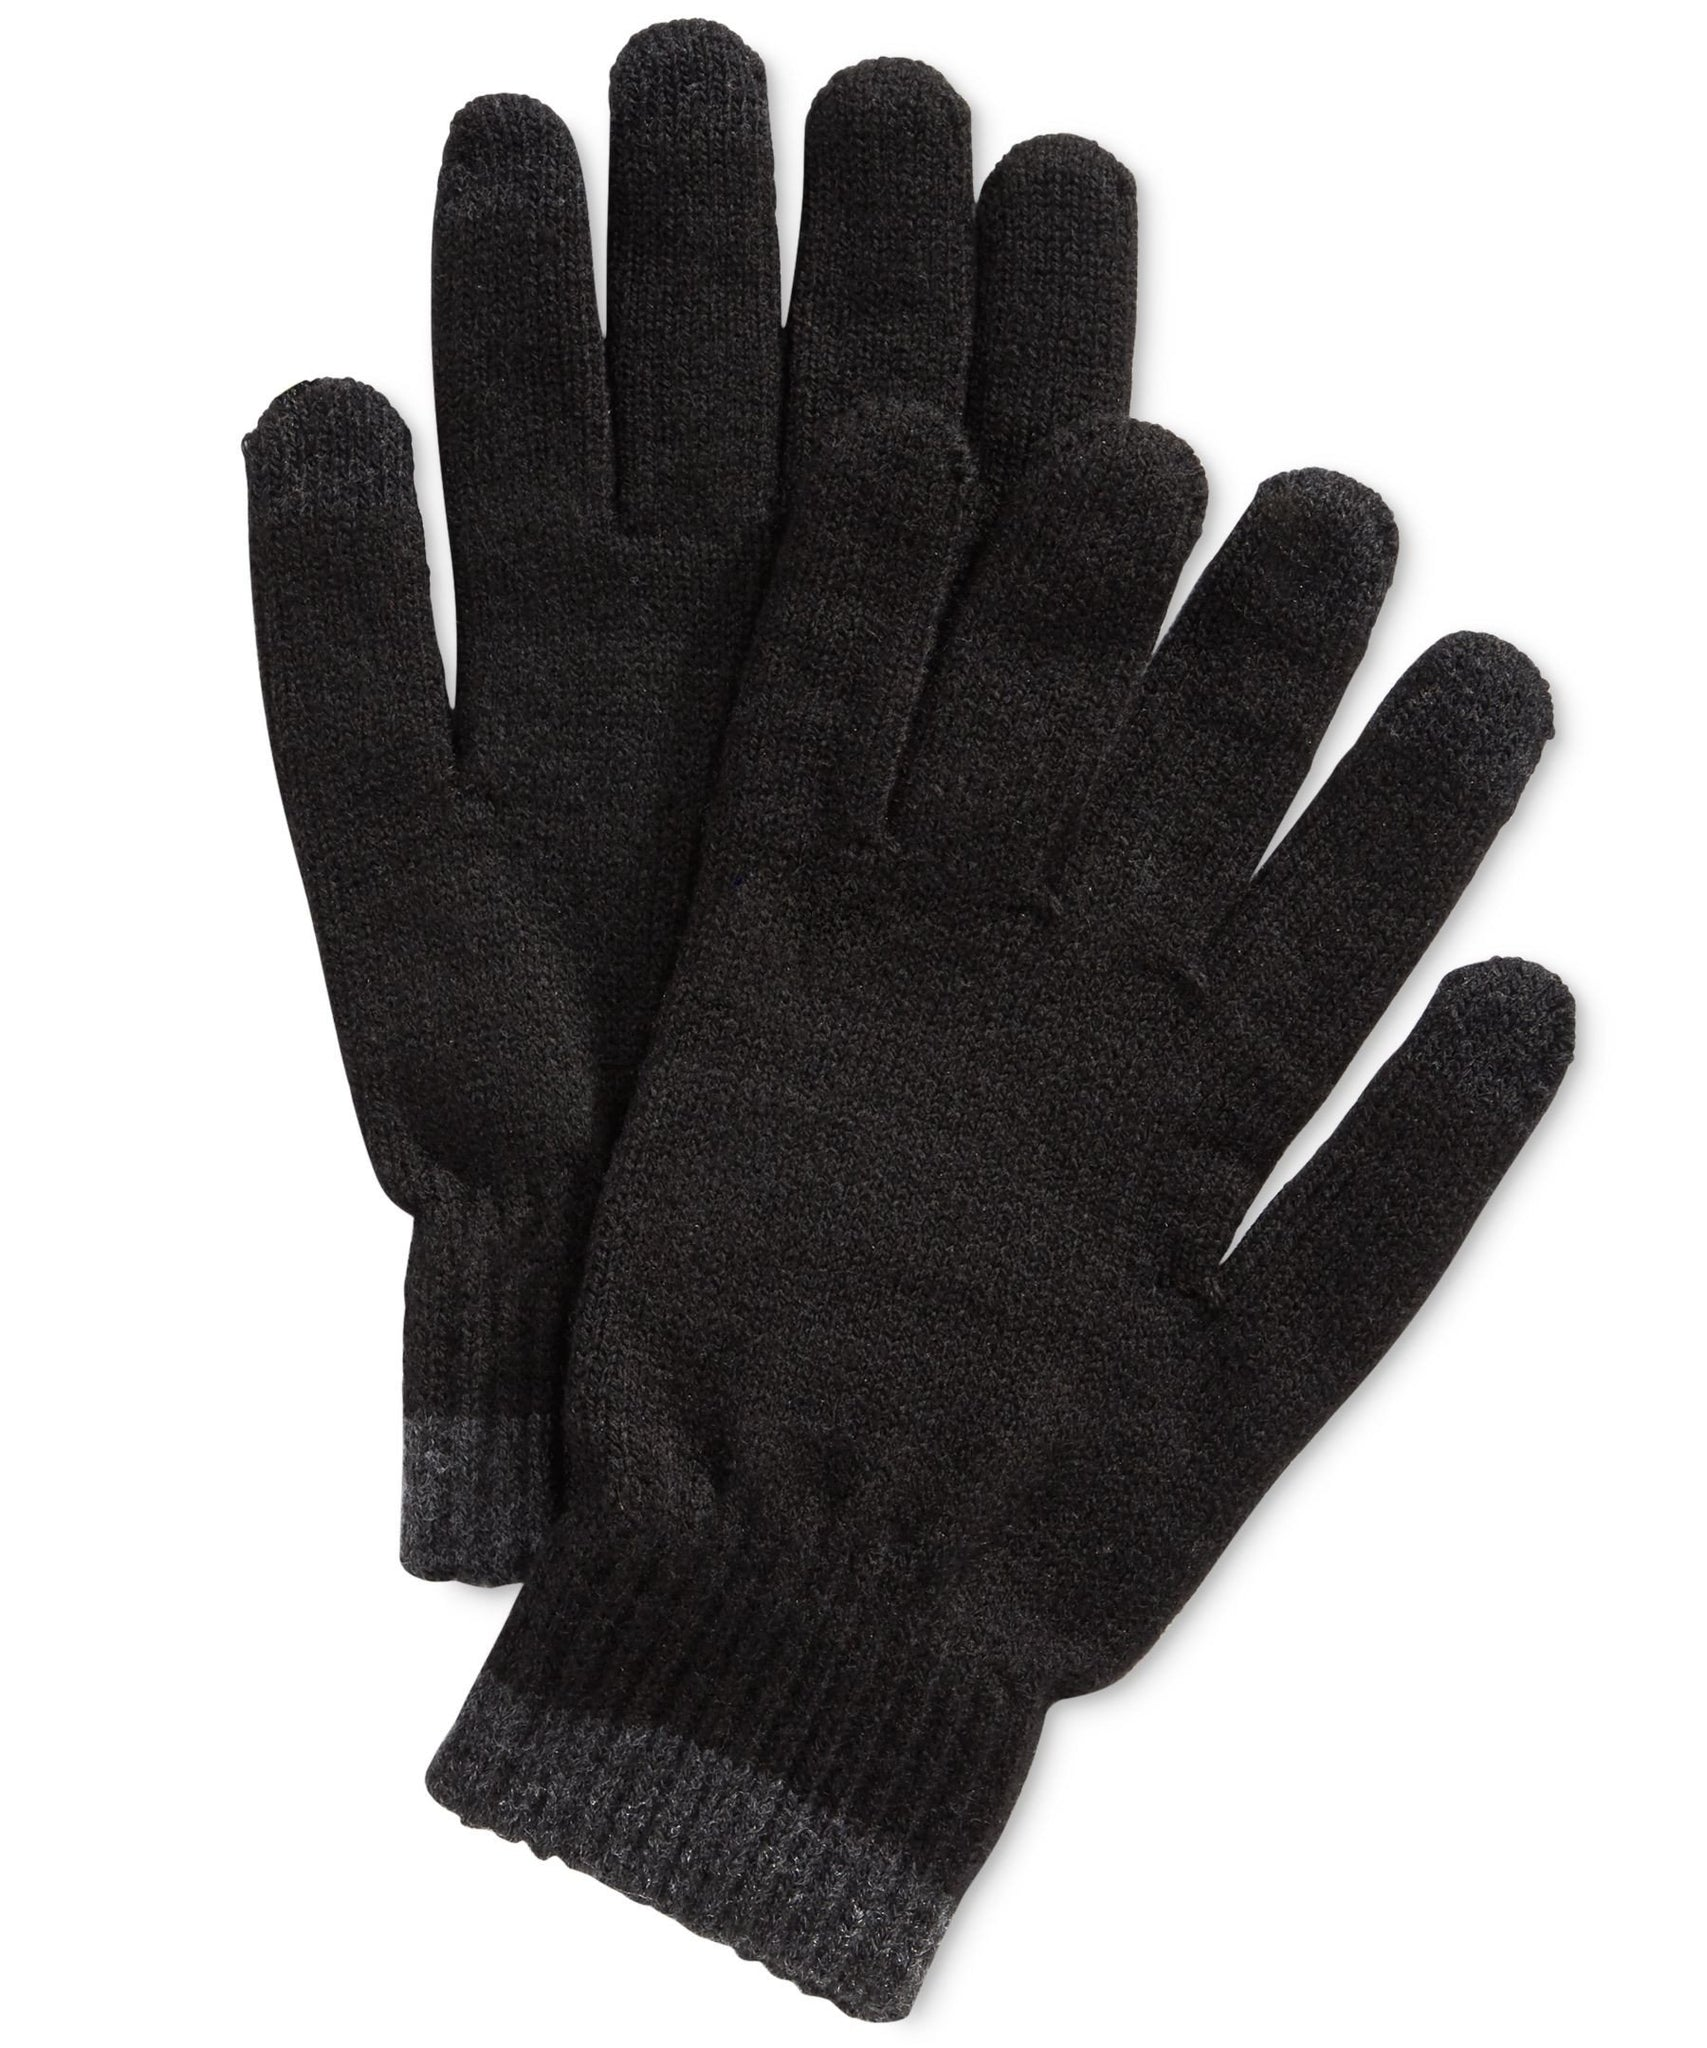 Alfani Texting Gloves Black / Grey One Size Fits Most